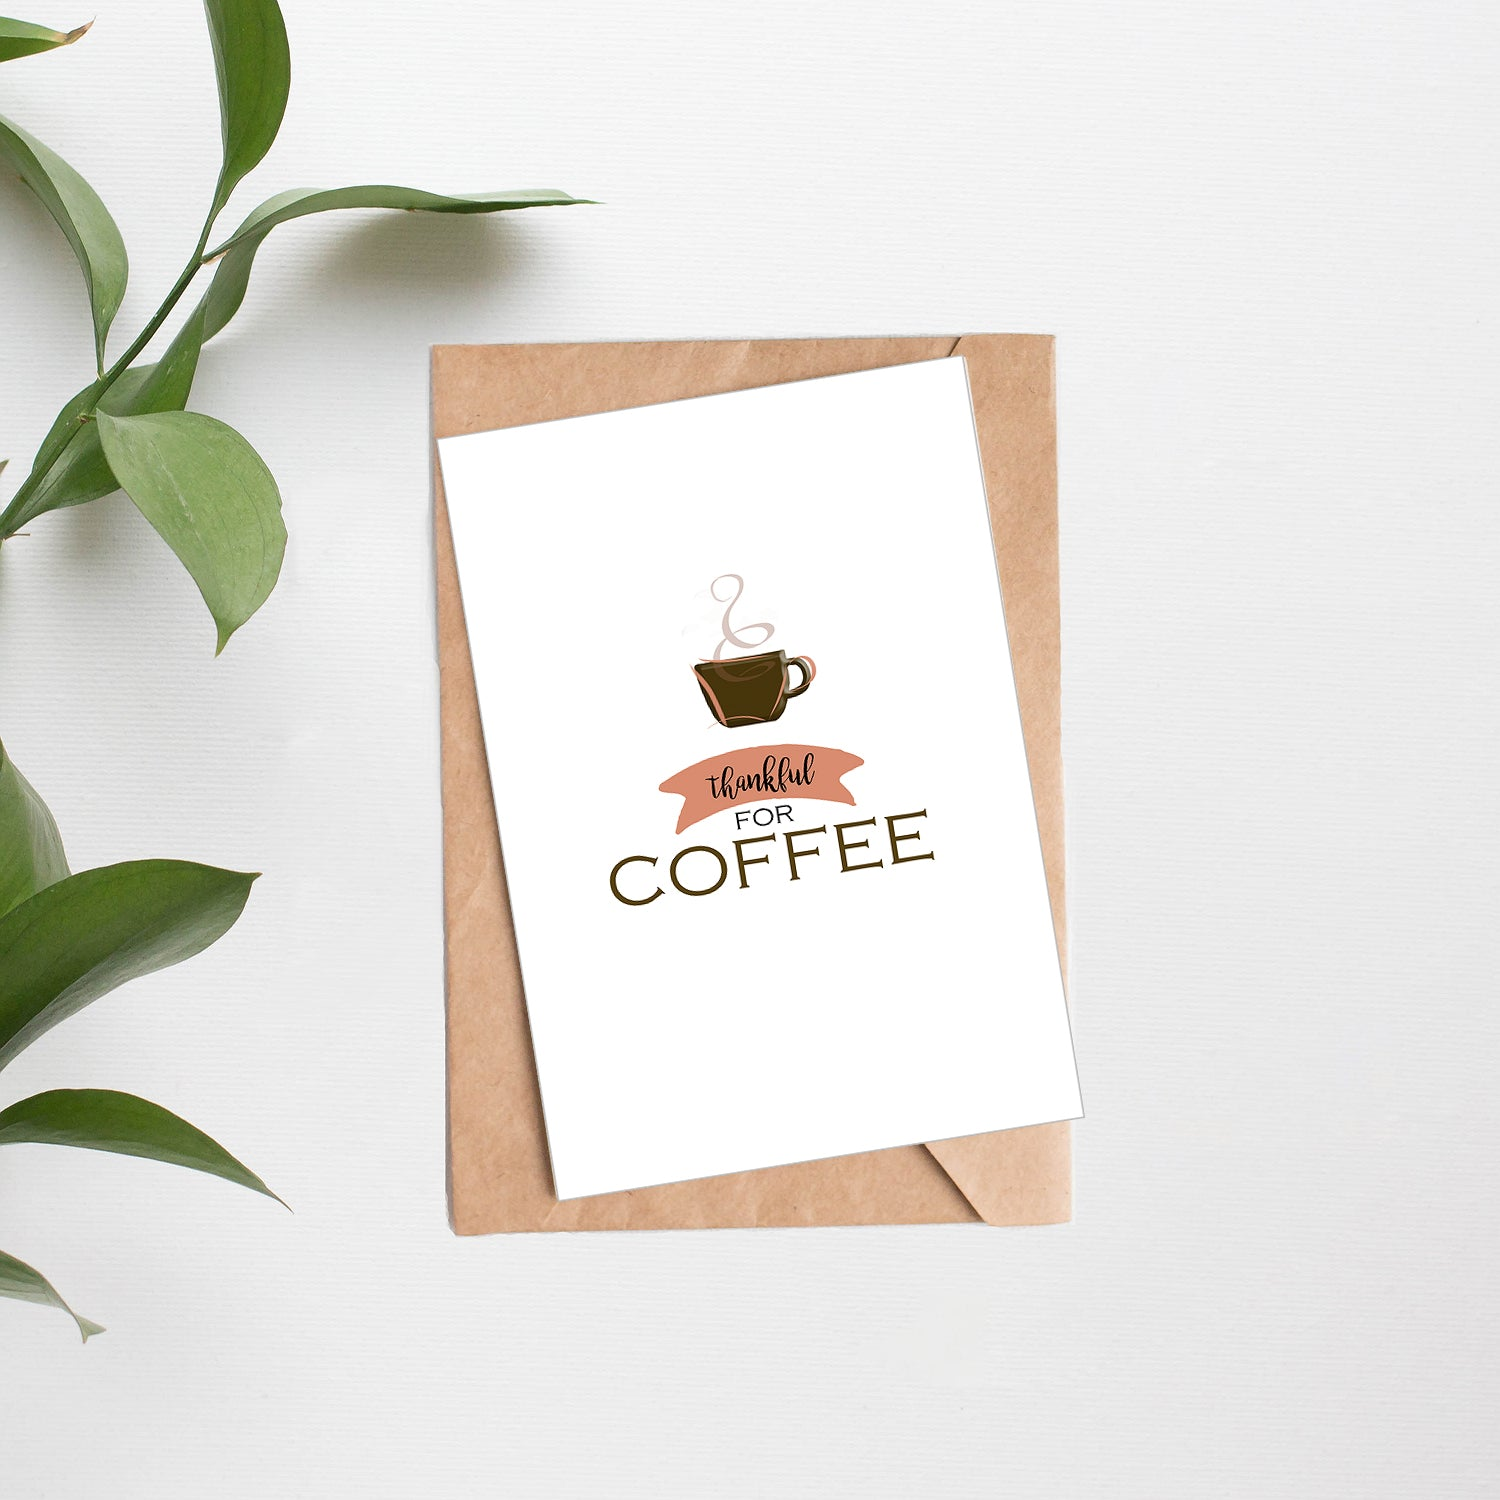 Card + Coffee - Thankful For Coffee #2